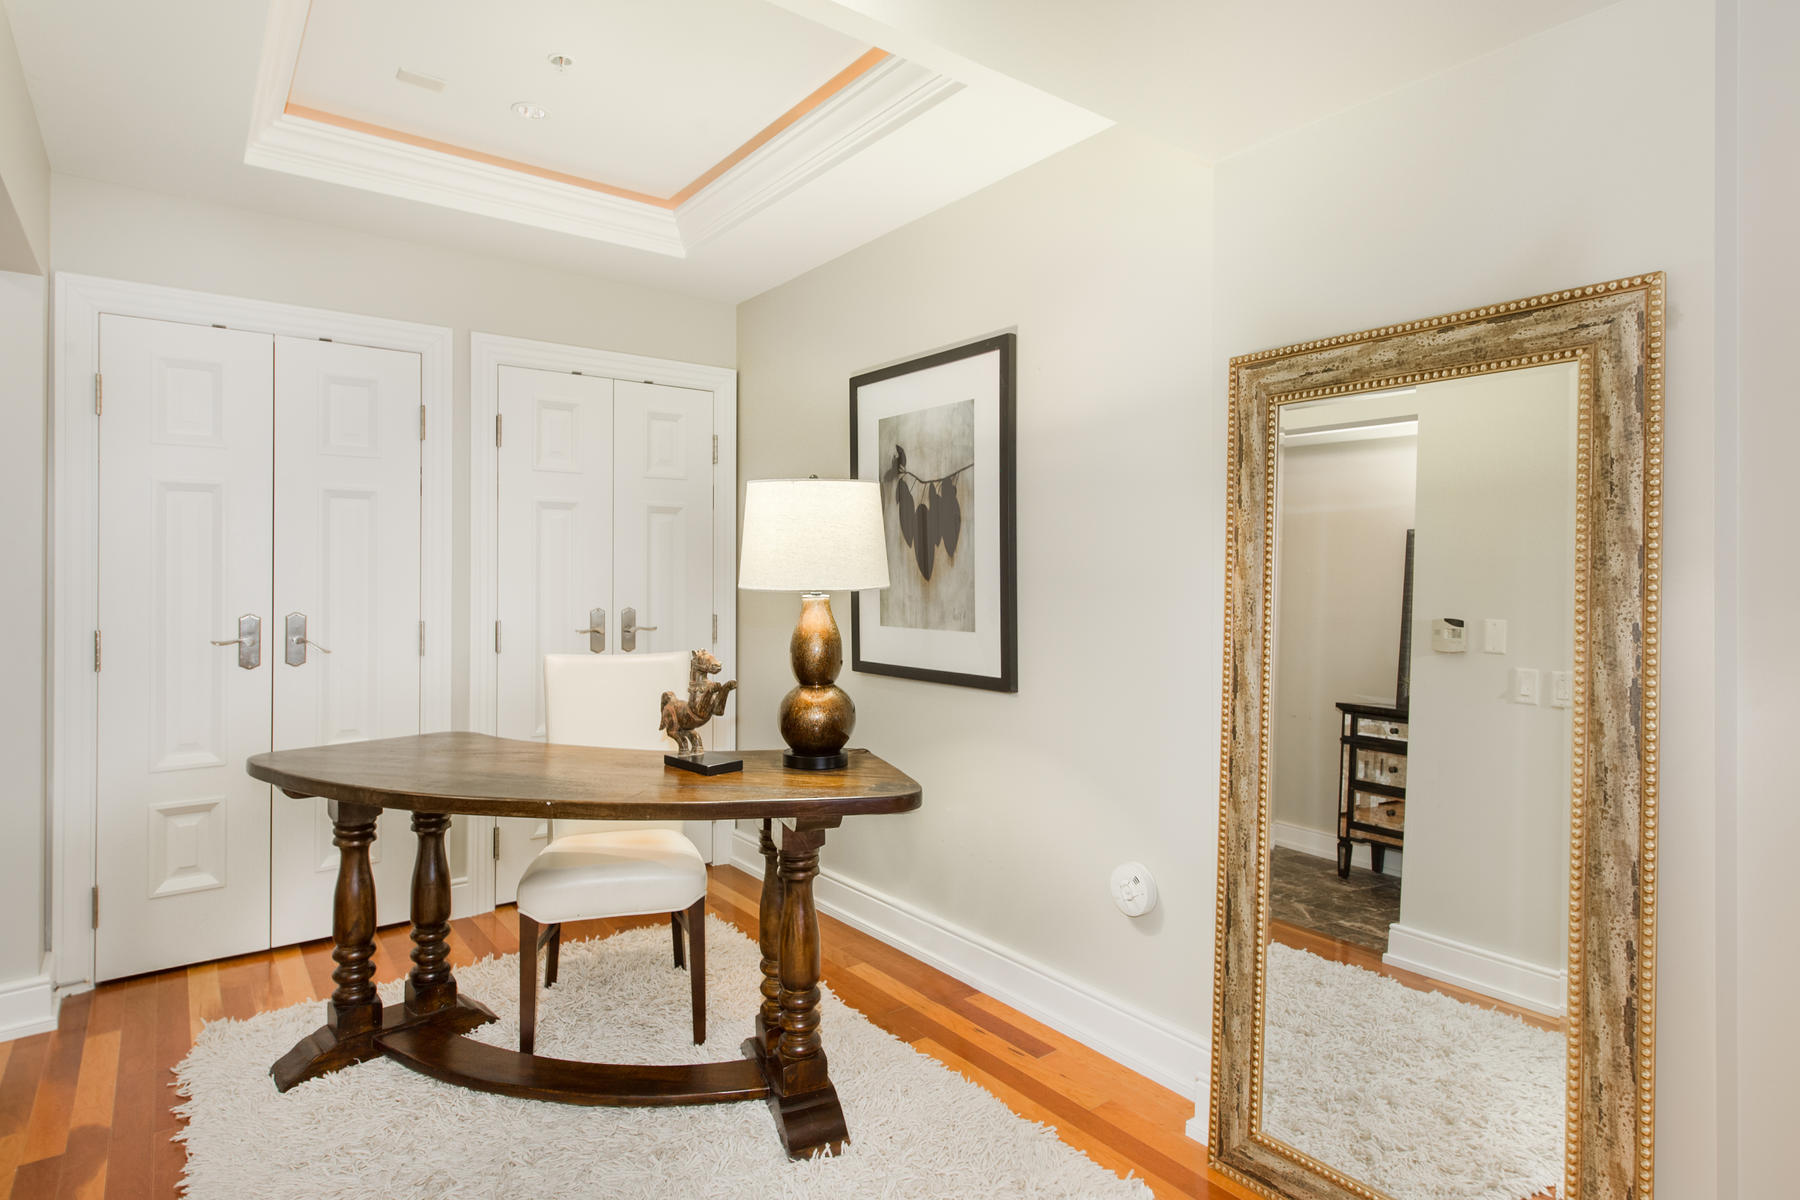 Additional photo for property listing at 1891 Curtis Street #1507  Denver, Colorado 80202 United States